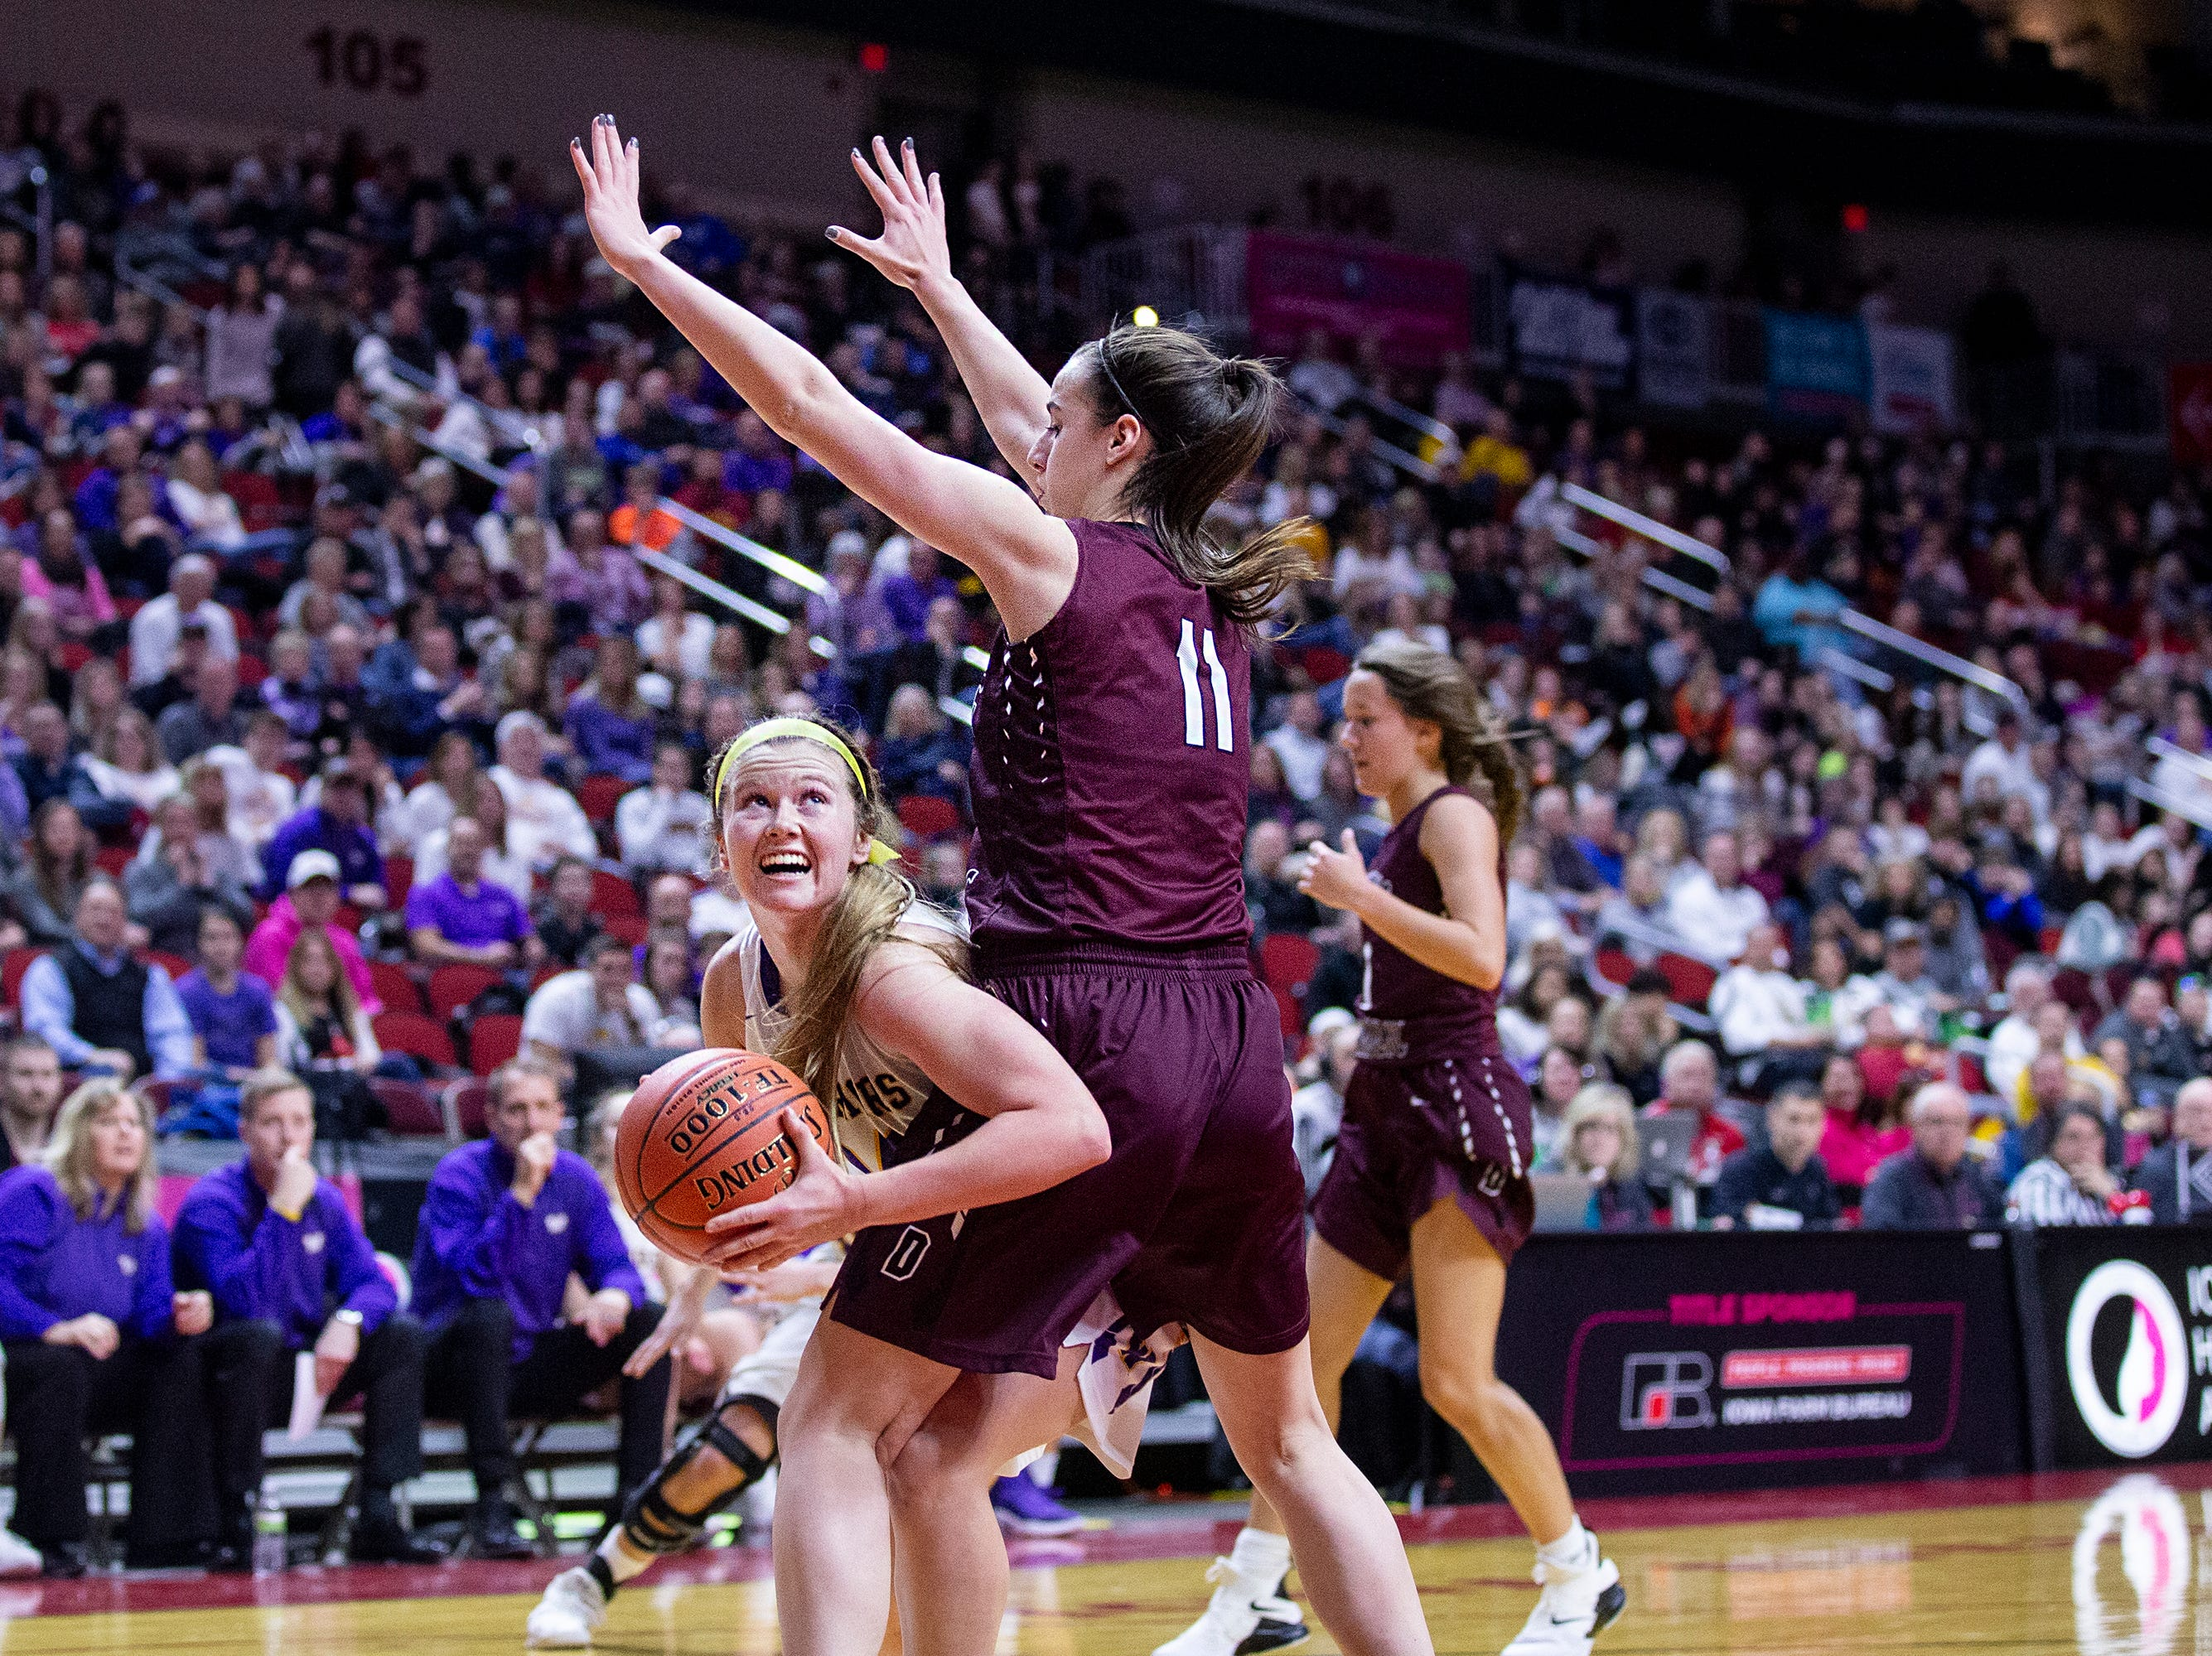 Waukee's Jori Nieman tries to shoot as Dowling's Caitlin Clark defends during the Class 5A Iowa girls' state basketball tournament quarterfinal between Dowling Catholic and Waukee on Monday, Feb. 25, 2019, in Wells Fargo Arena.